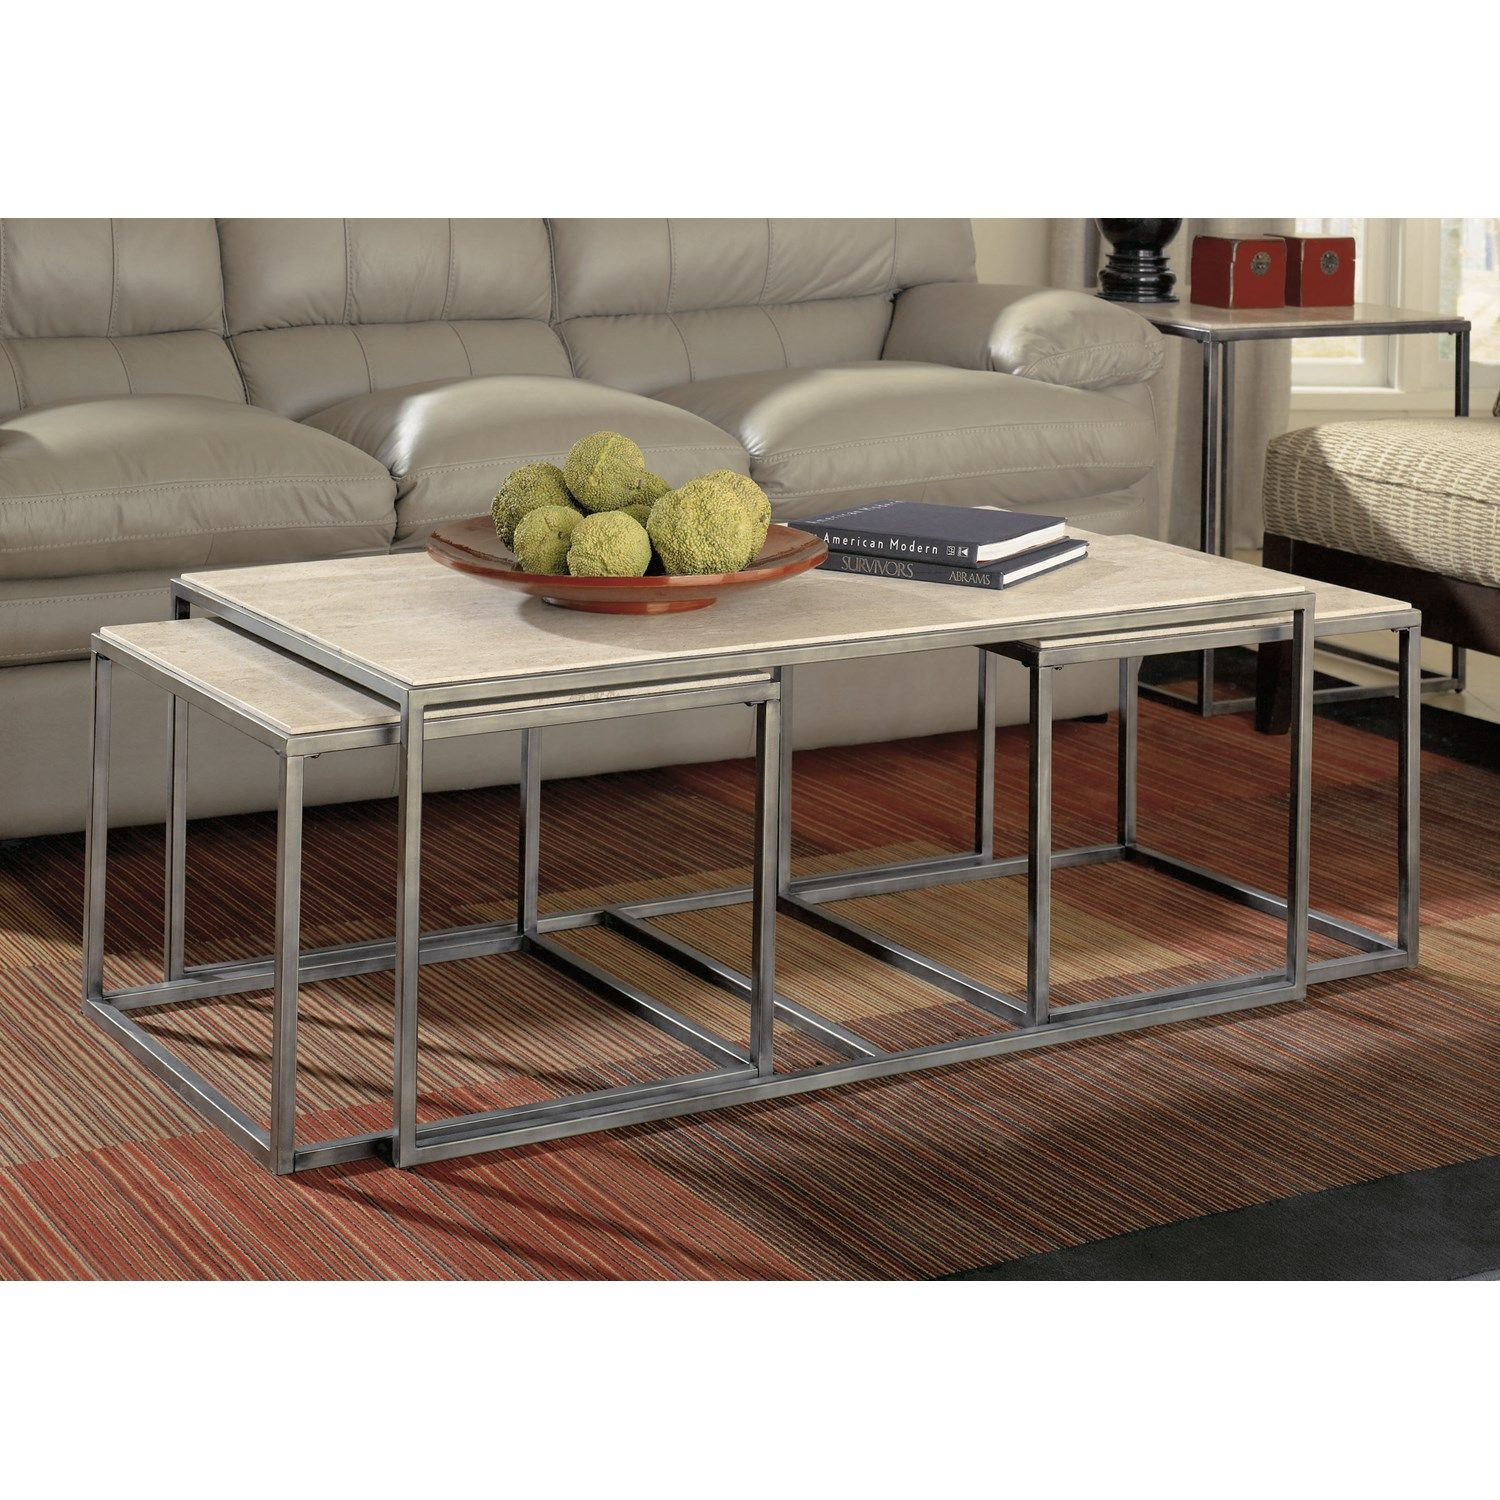 Hammary Furniture Modern Basics Bunching Table 190 910 The Simple Stores Nesting Coffee Tables 3 Piece Coffee Table Set Coffee Table Rectangle [ 1500 x 1500 Pixel ]